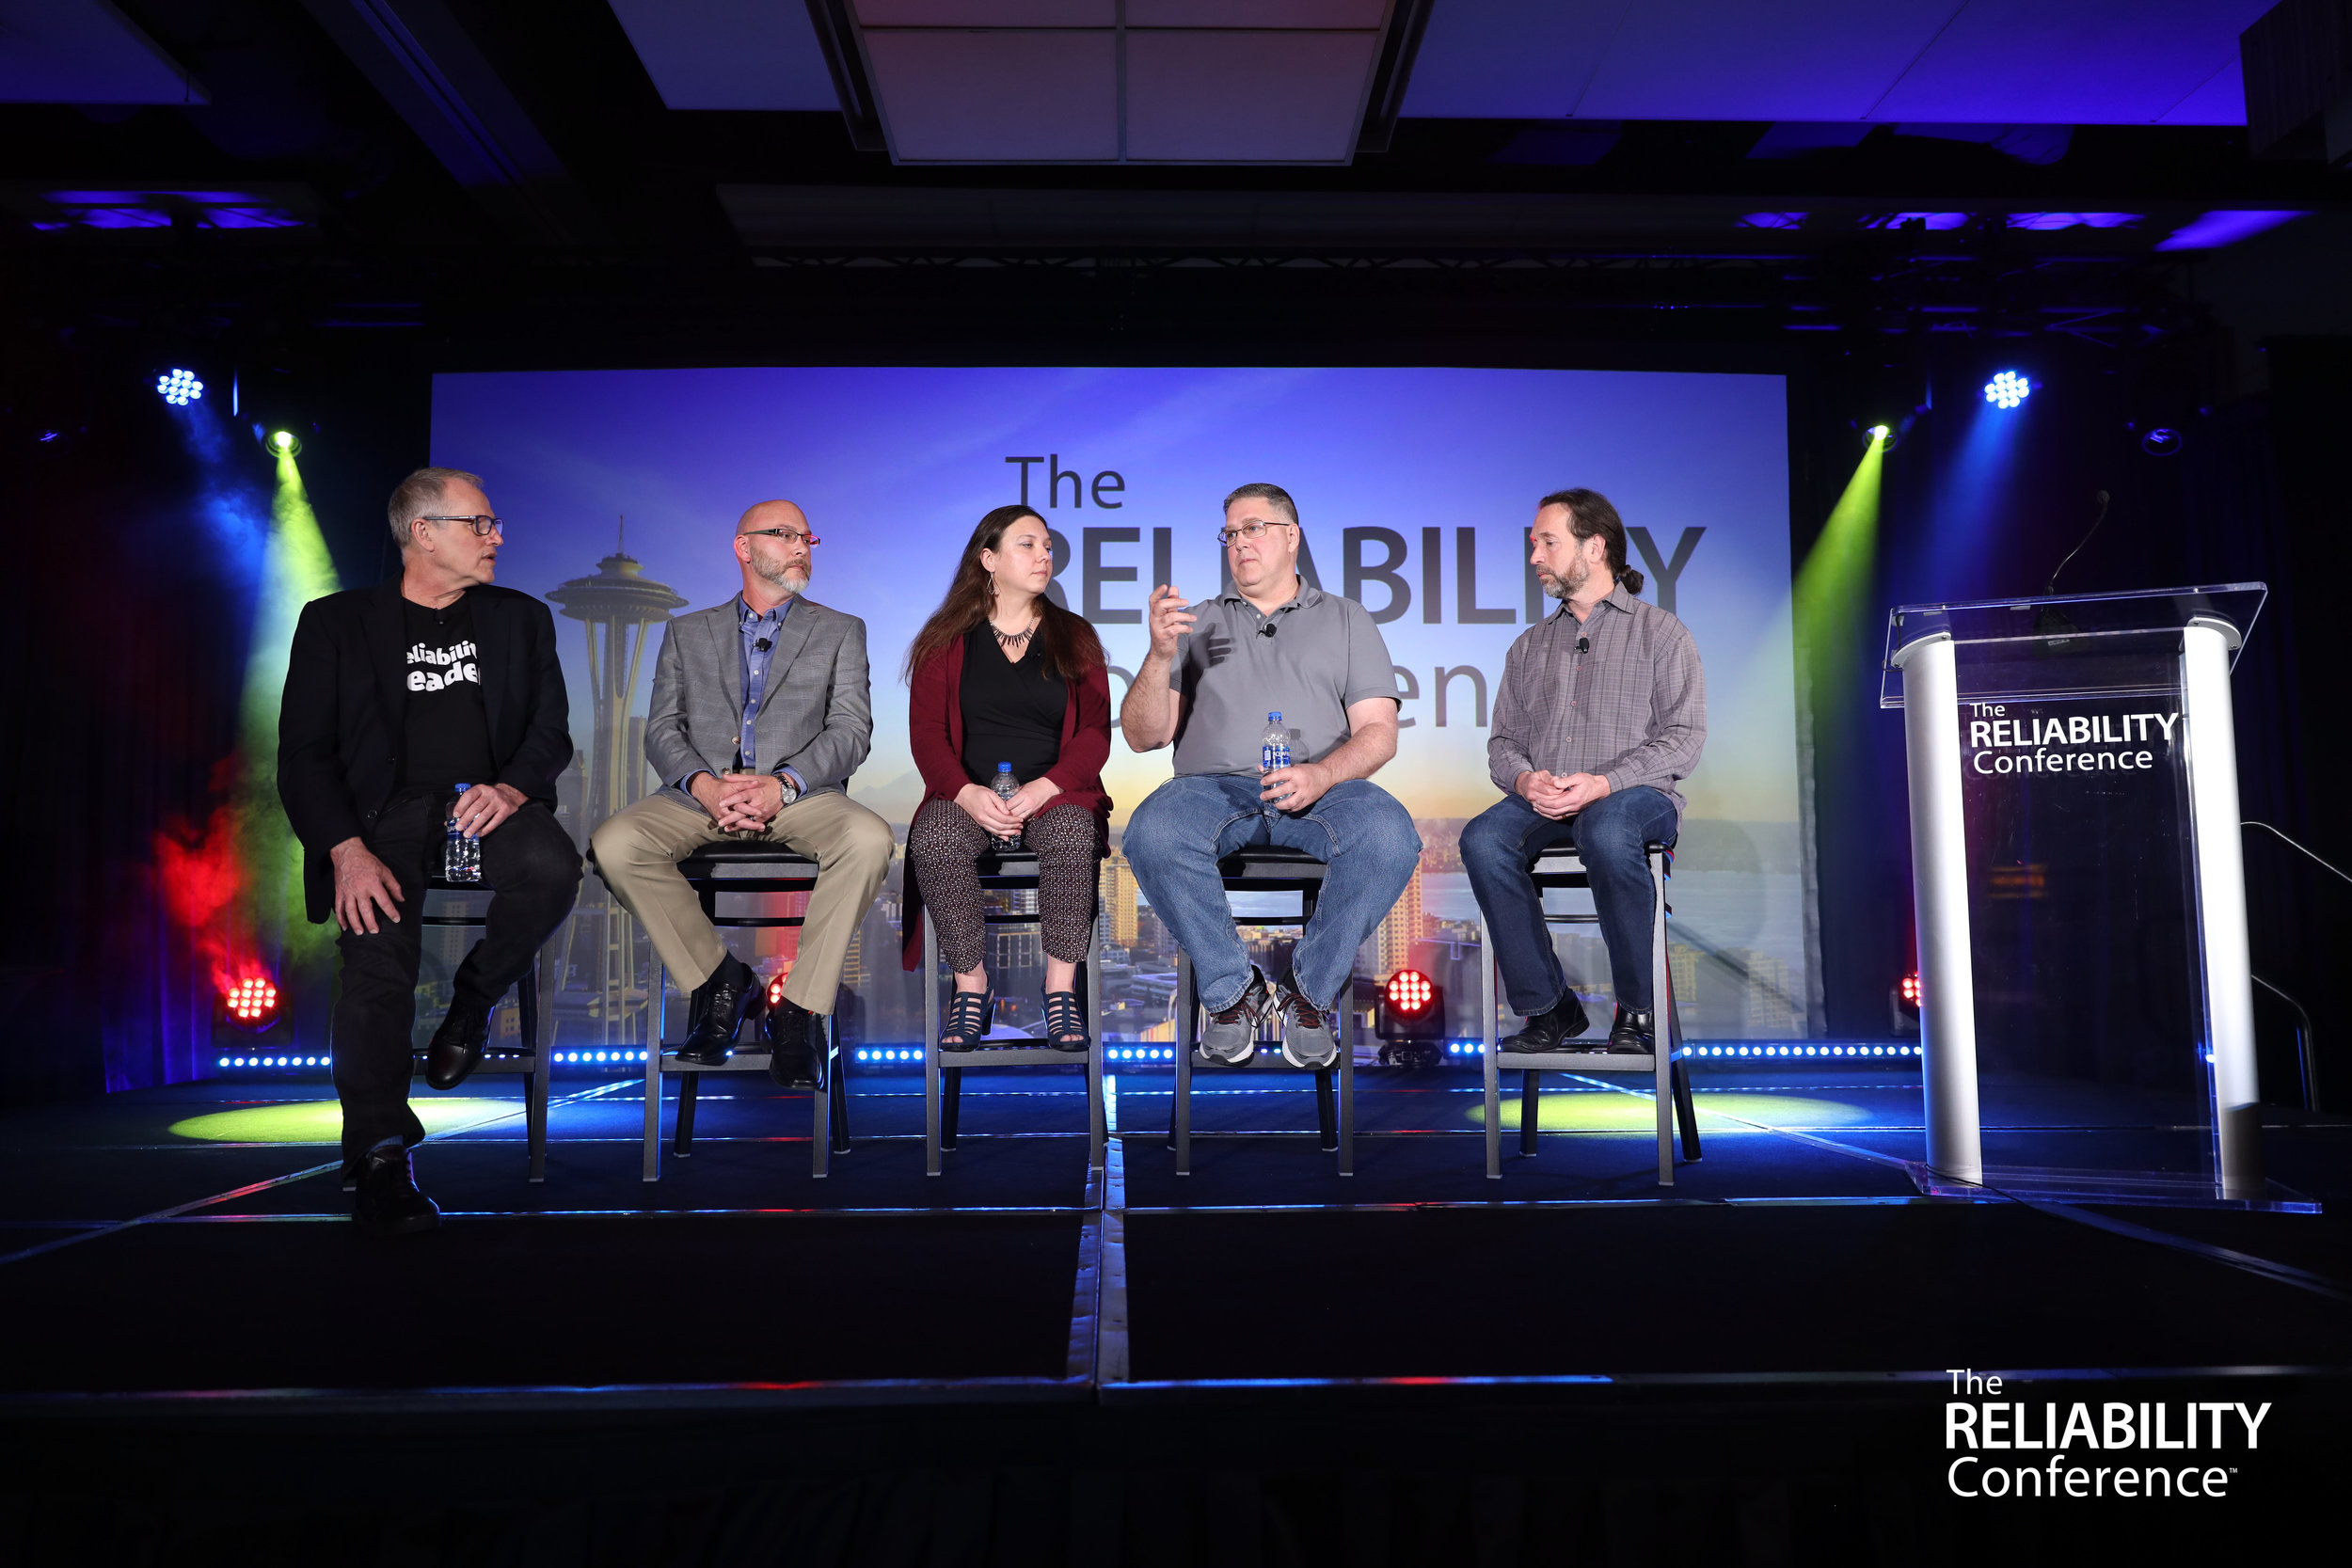 The Reliability Conference 2019